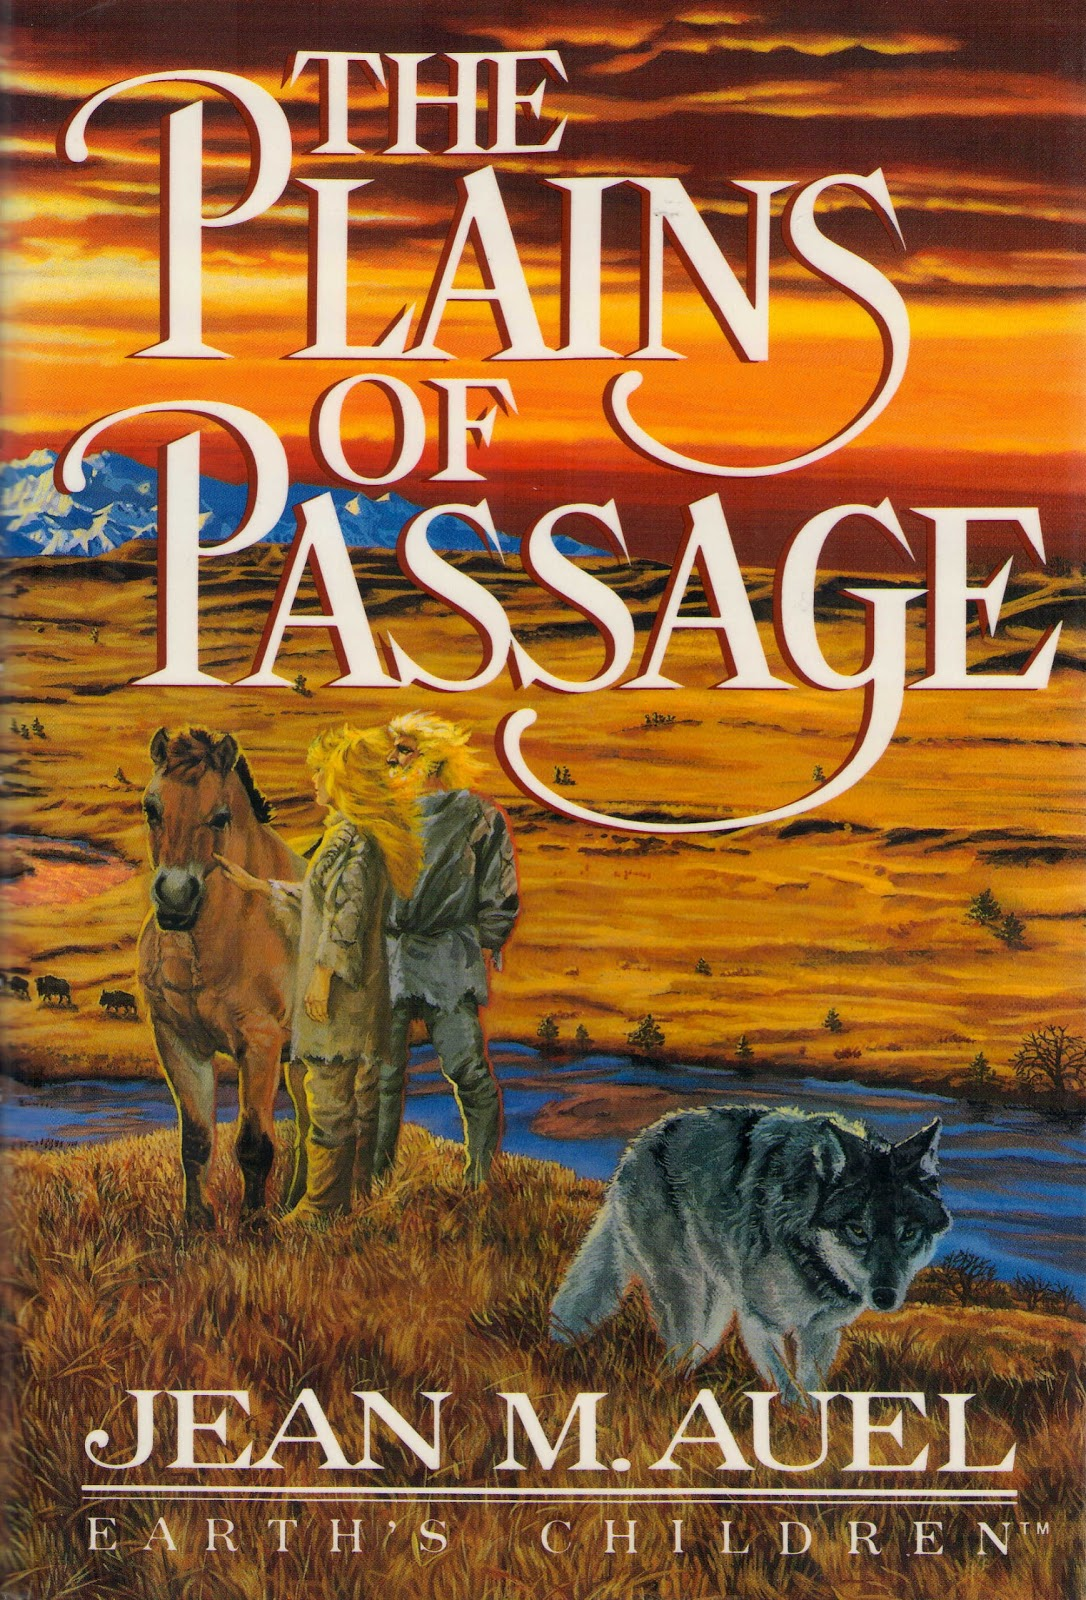 JEAN M. AUEL - THE PLAINS OF PASSAGE - Earth's Children (4)